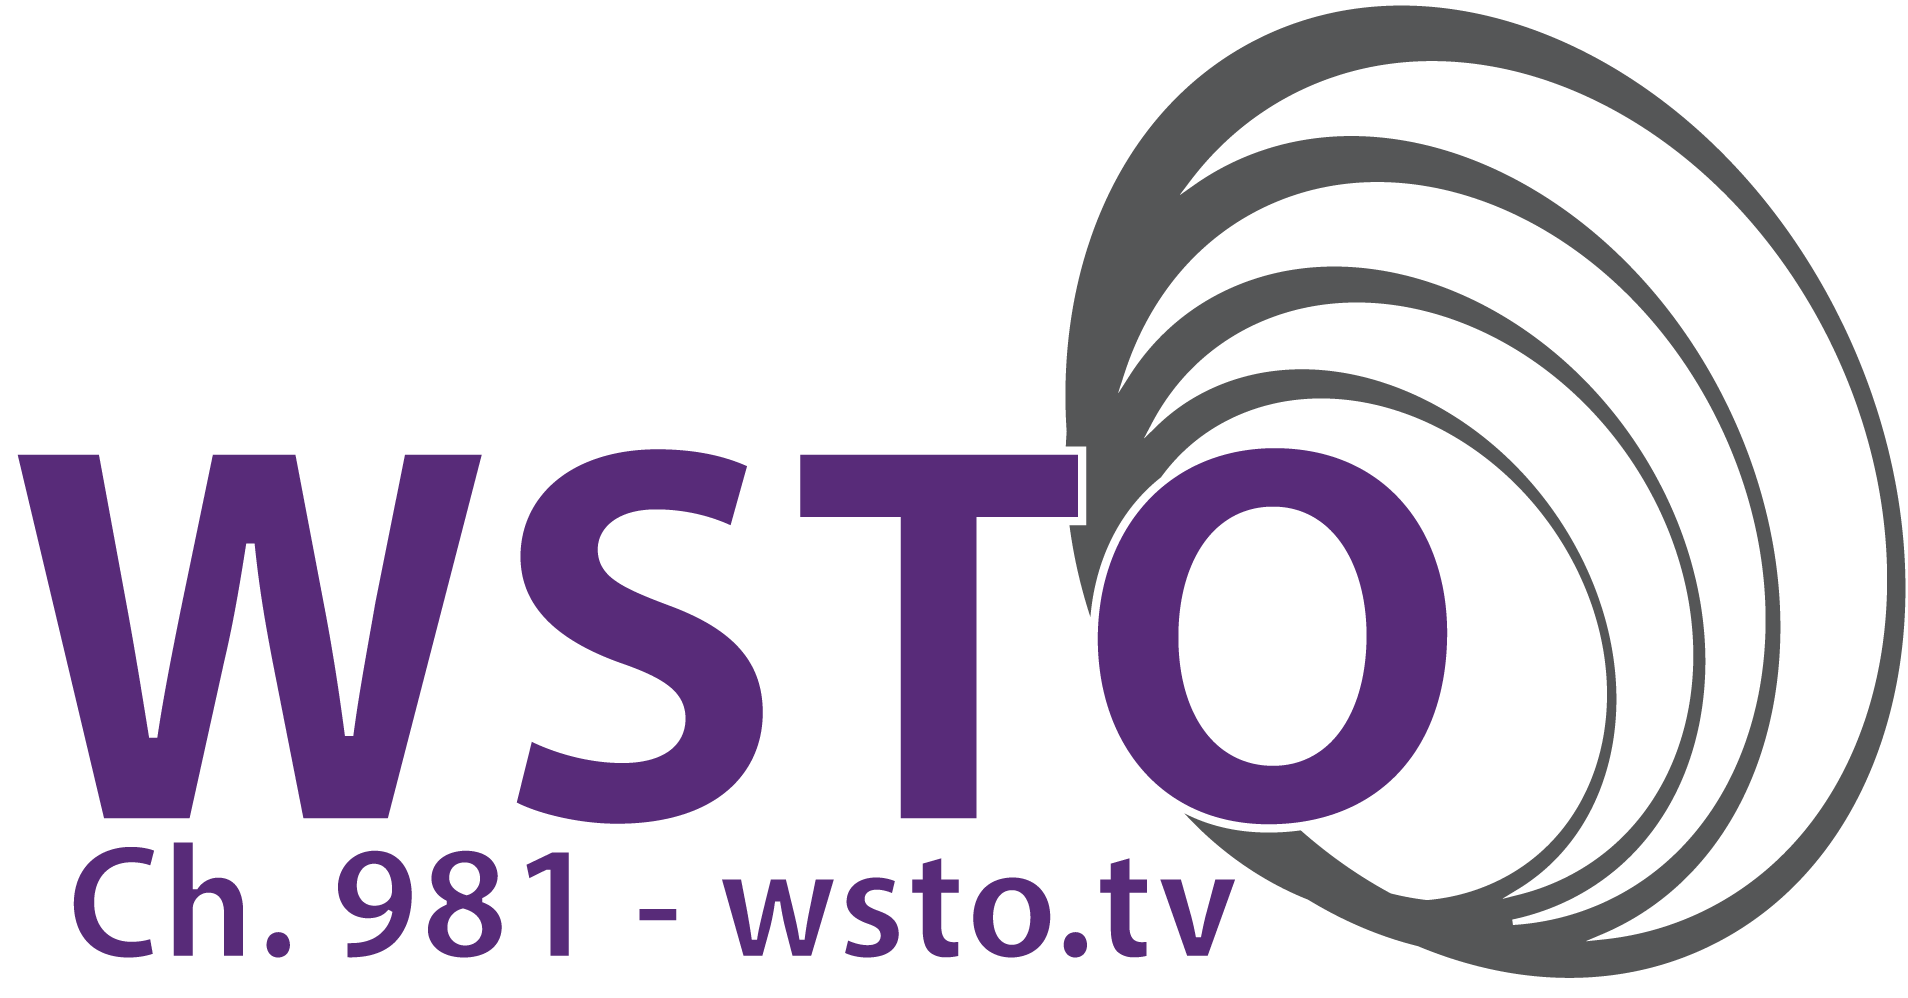 WSTO TV - Stoughton, WI